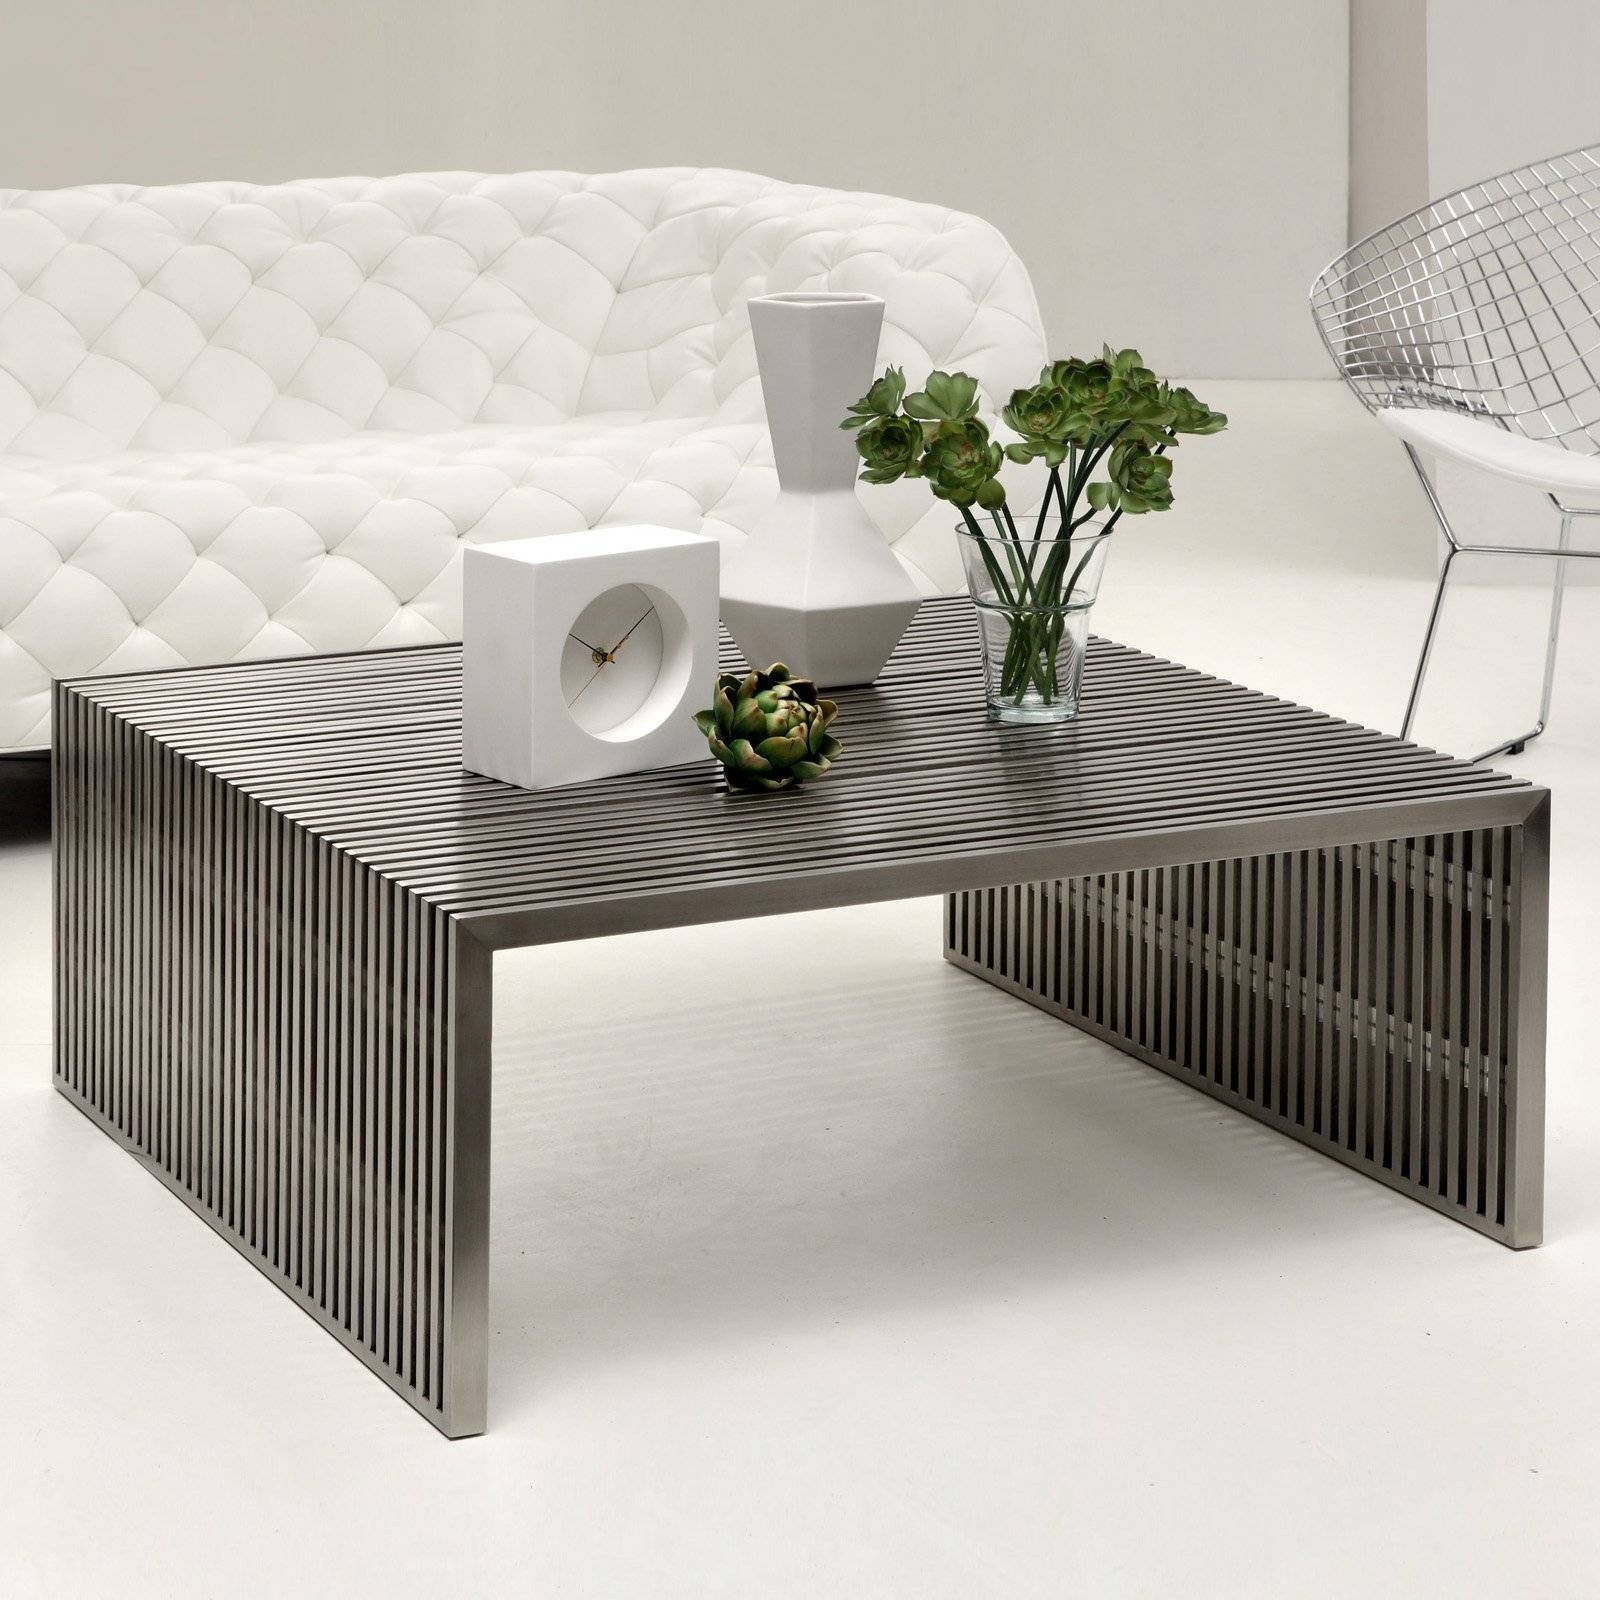 Modway Small Gridiron Stainless Steel Coffee Table With Tempered regarding Large Modern Coffee Tables (Image 13 of 15)